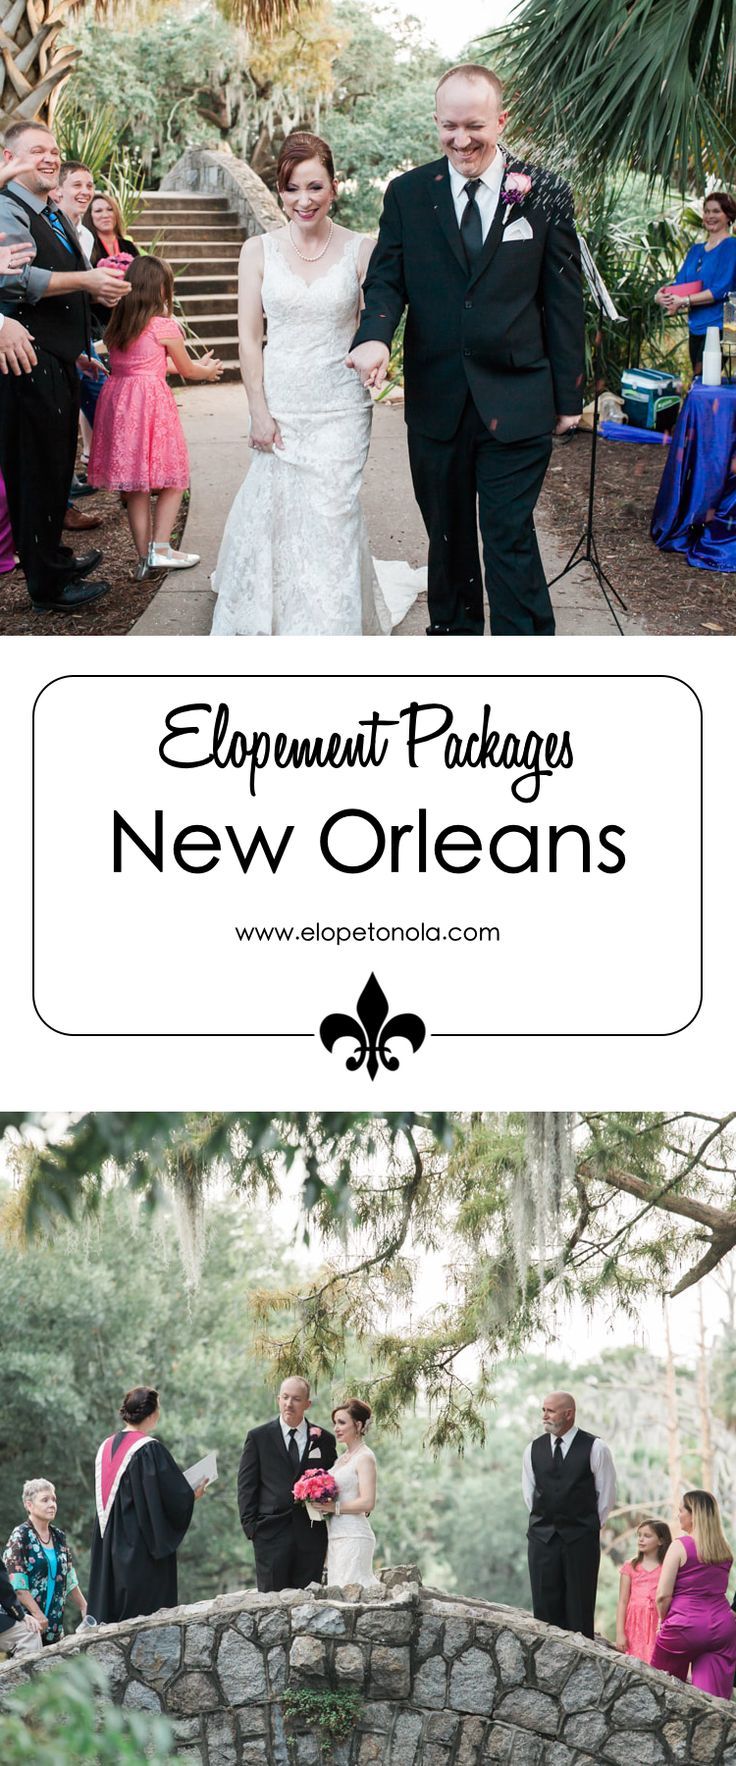 Elope to New Orleans. AFFORDABLE ELOPEMENT WEDDING PHOTOGRAPHY PACKAGES. We offer several affordable elopement packages whether it's just the two of you or packages to include you bringing along your favorite people on earth!At Elopetonola, we care about you and we are here to help you create a memorable elopement experience.